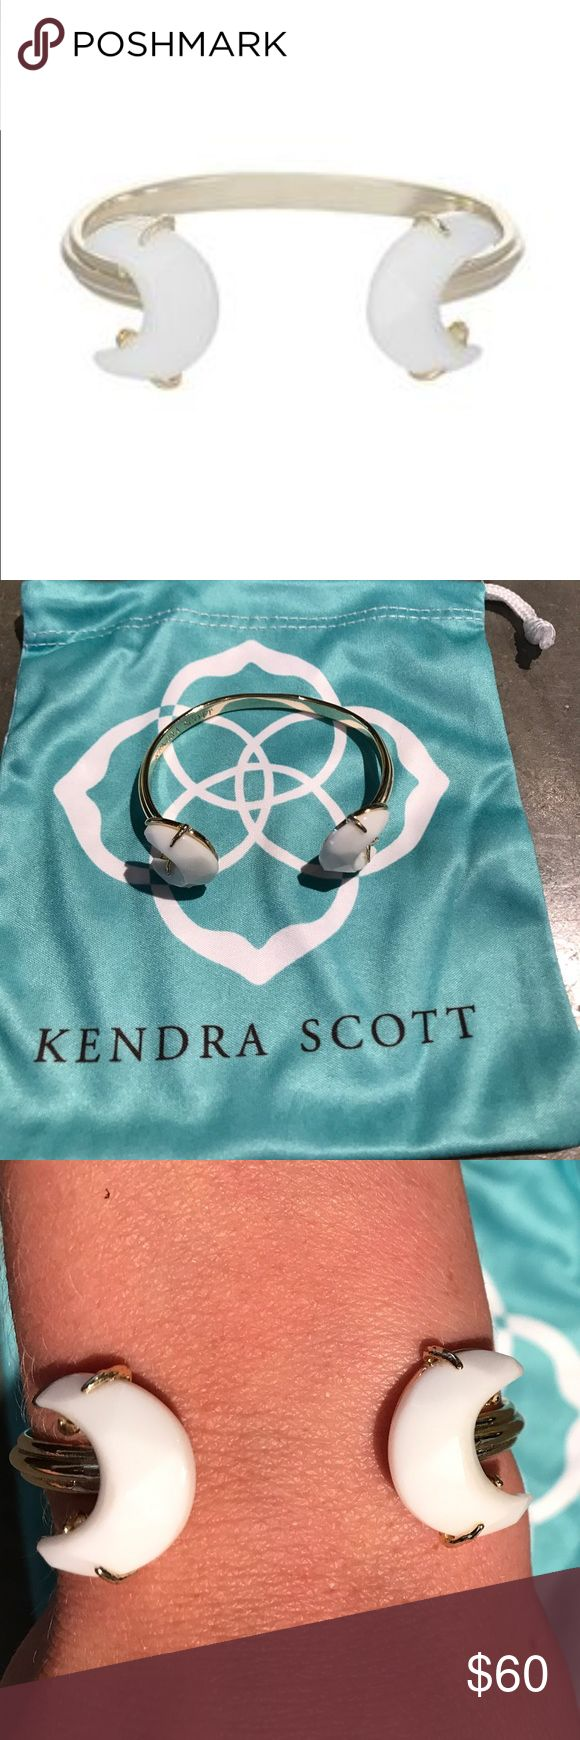 Kendra Scott Carson Cuff Gold metal, white stone. Good condition. Sold out style! Kendra Scott Jewelry Bracelets